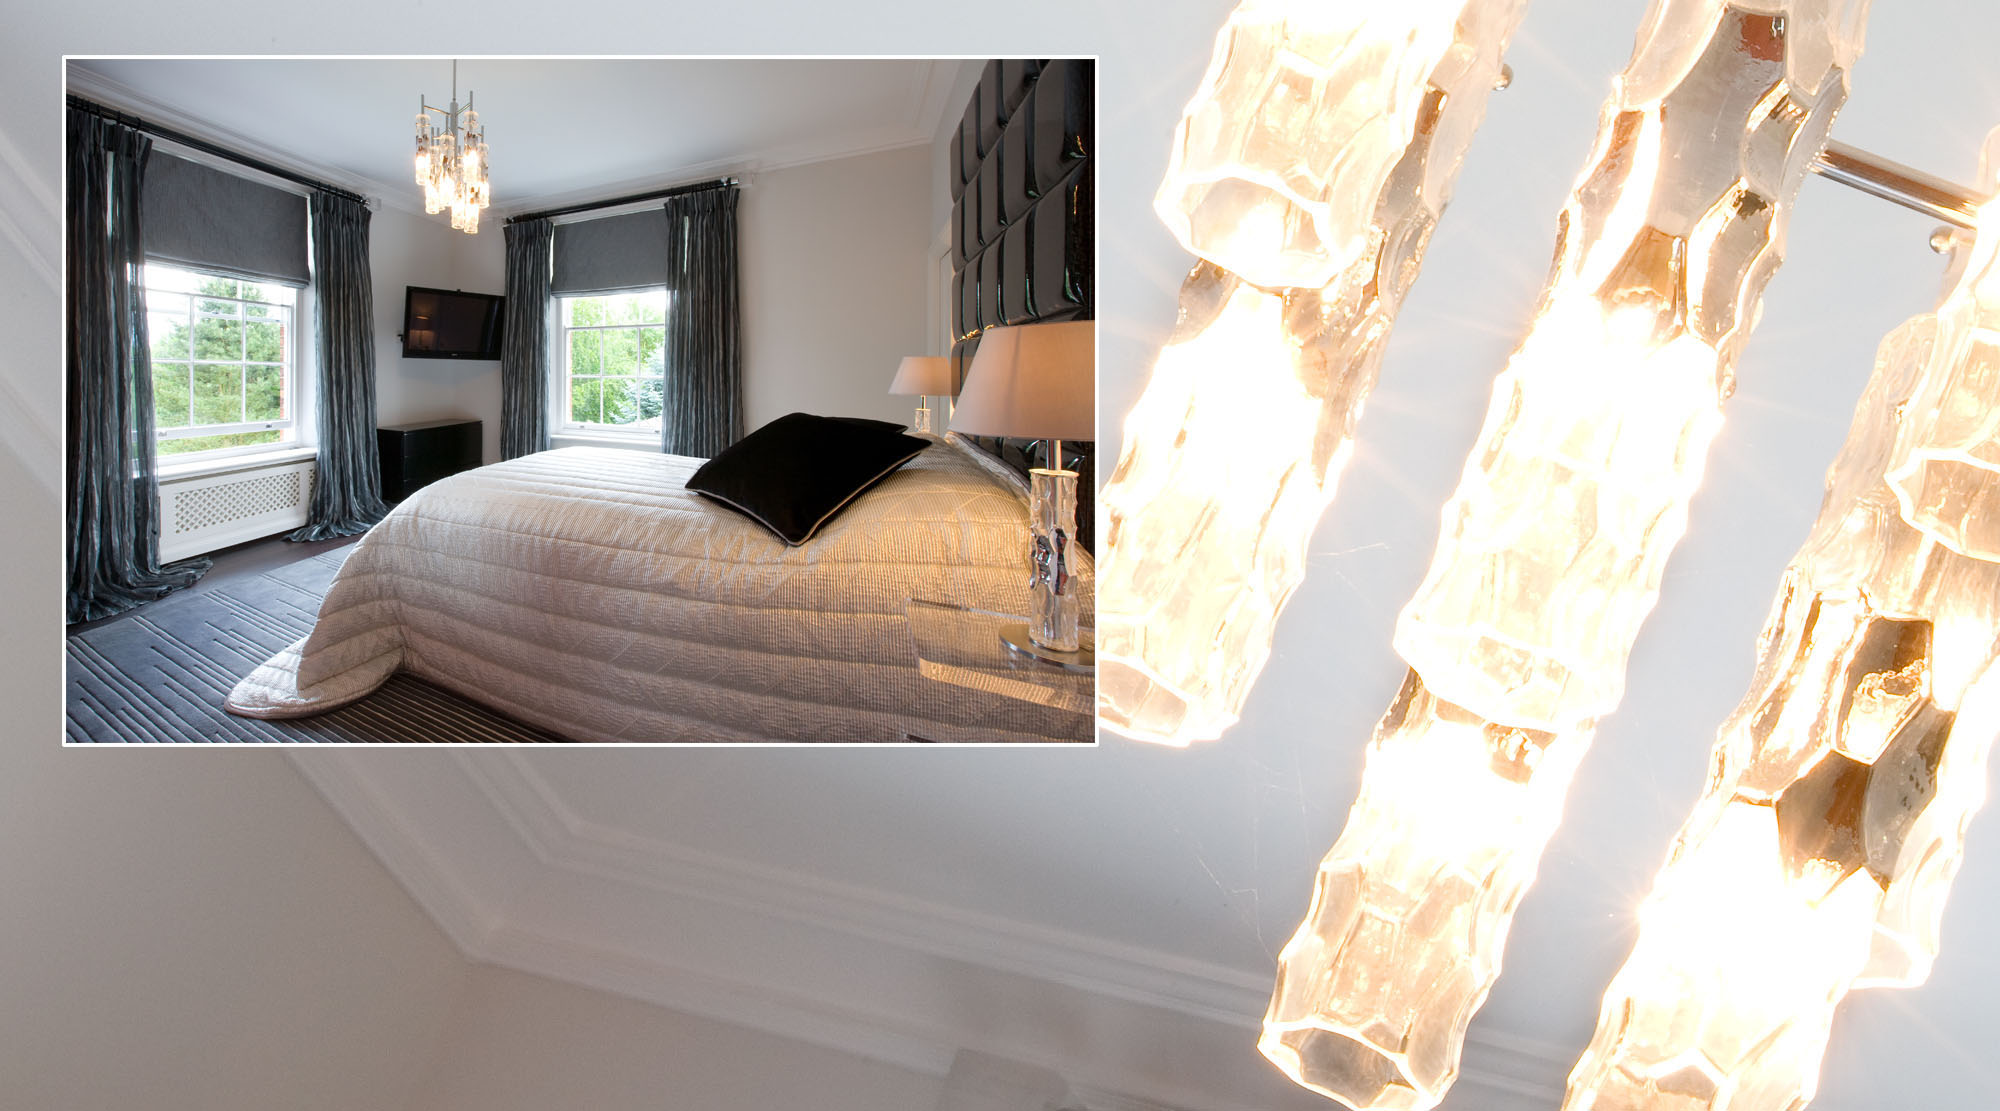 Ice cube style ceiling light fitting in a bedroom setting.